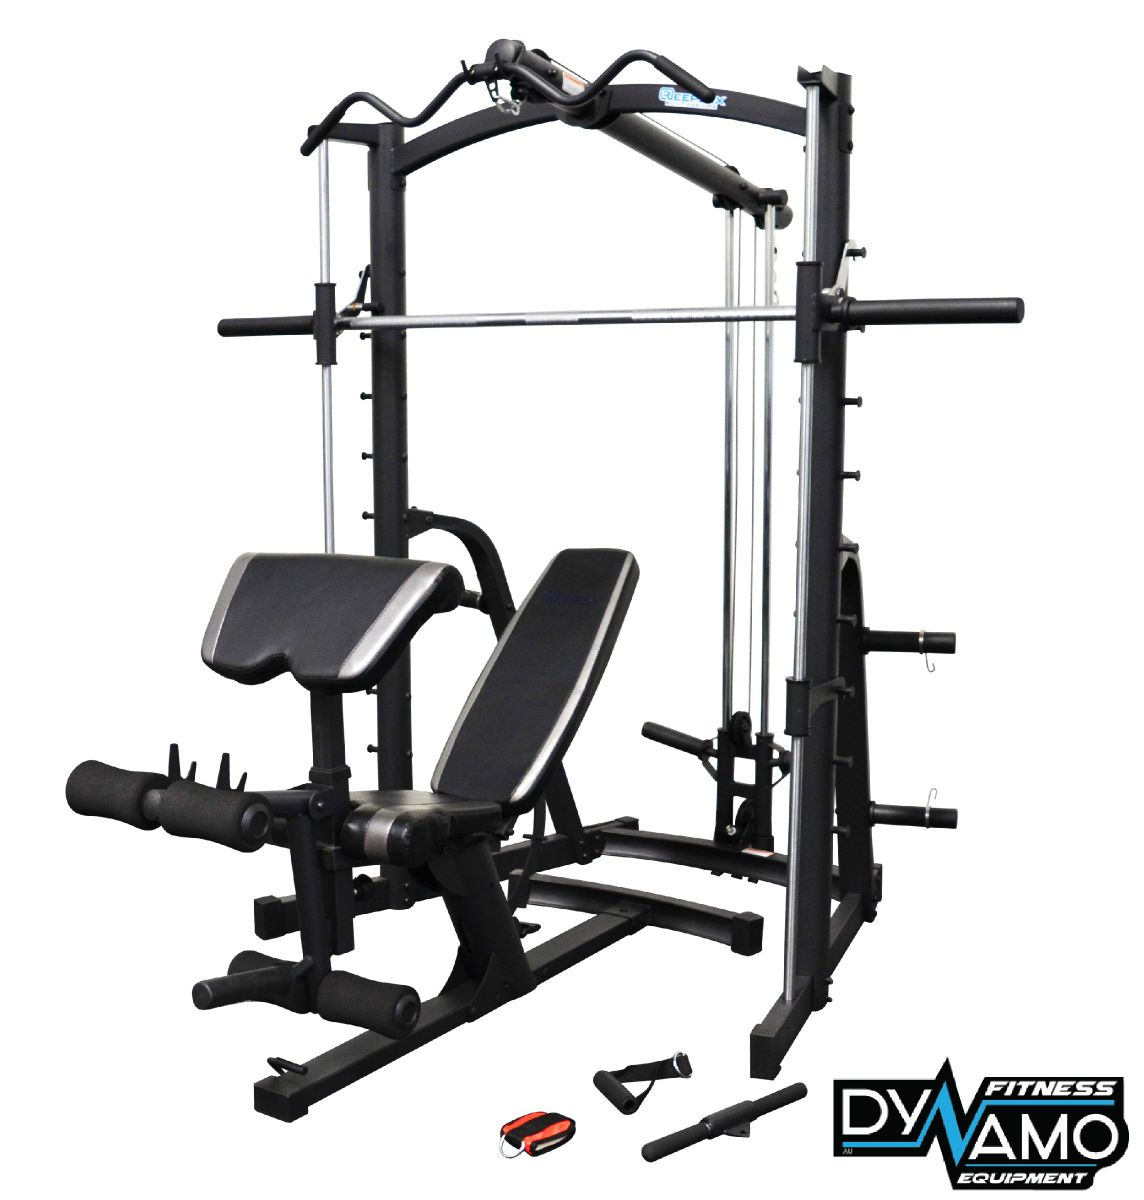 Home gym smith machine linear bearing lat pull down fid